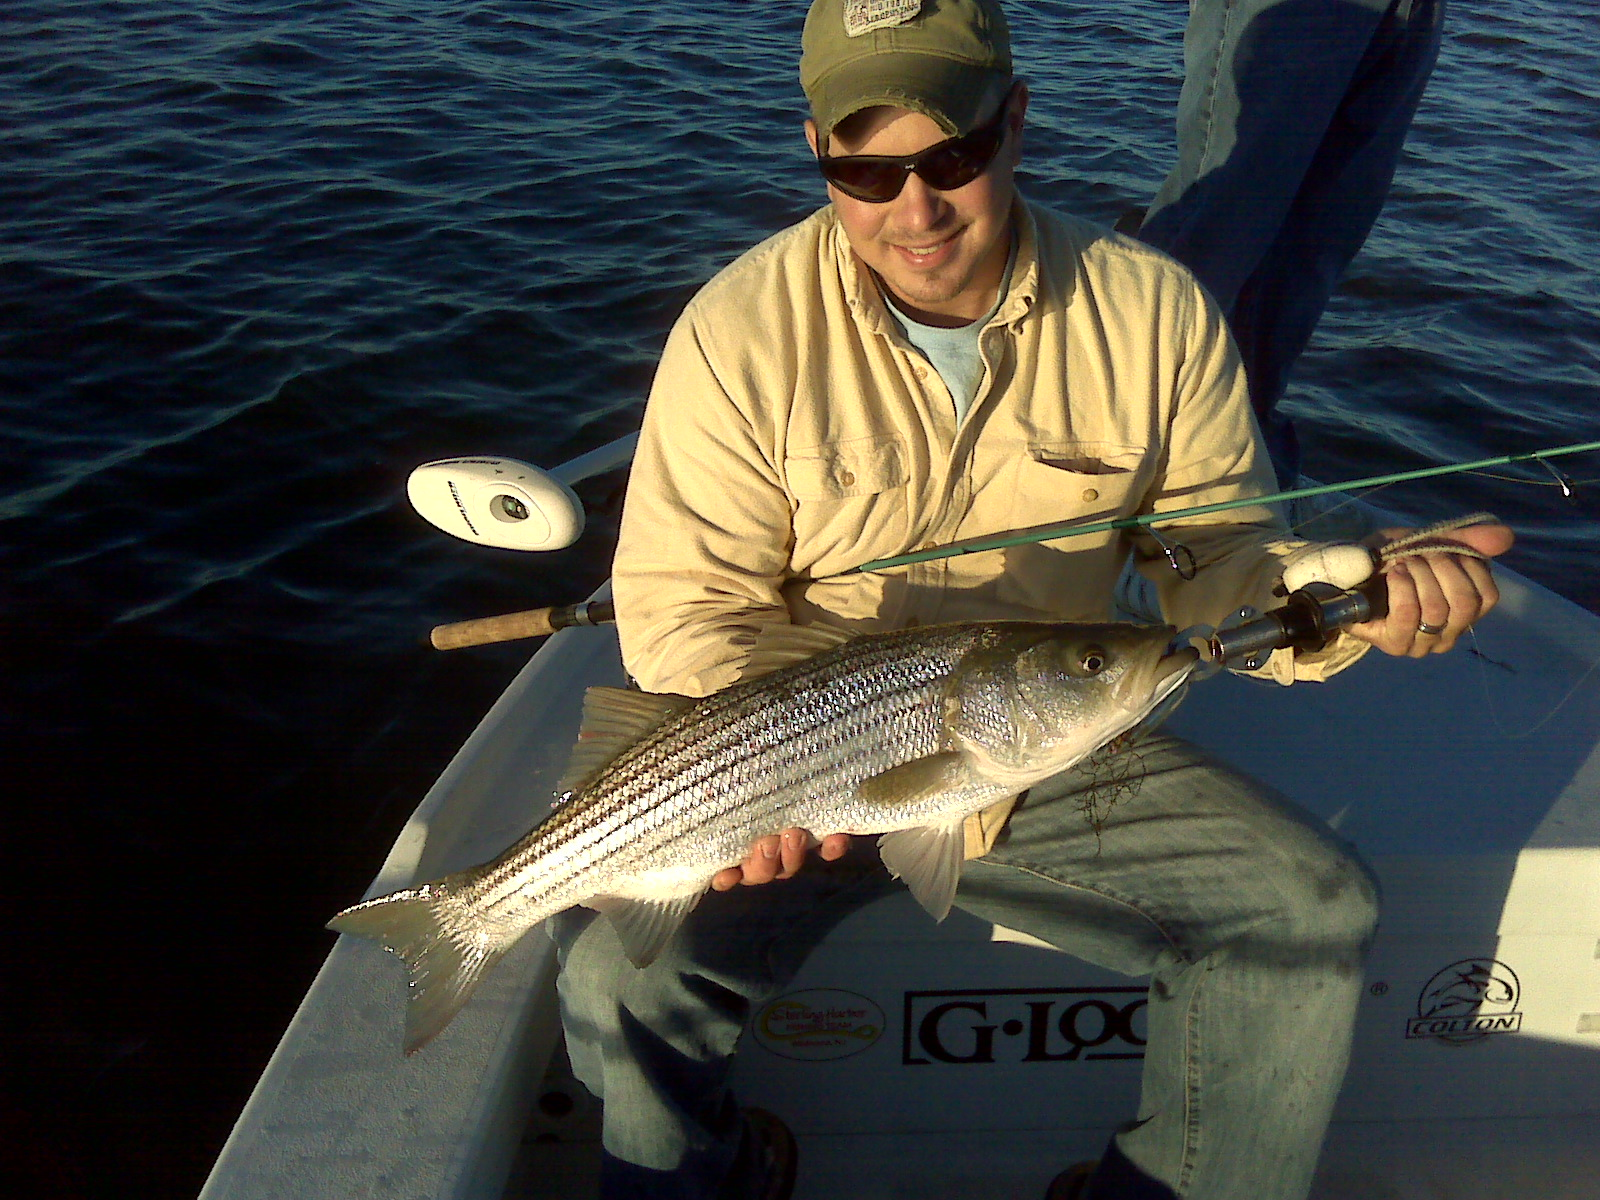 Insomniac guide service g loomis pro staff fishing report for Fishing pro staff